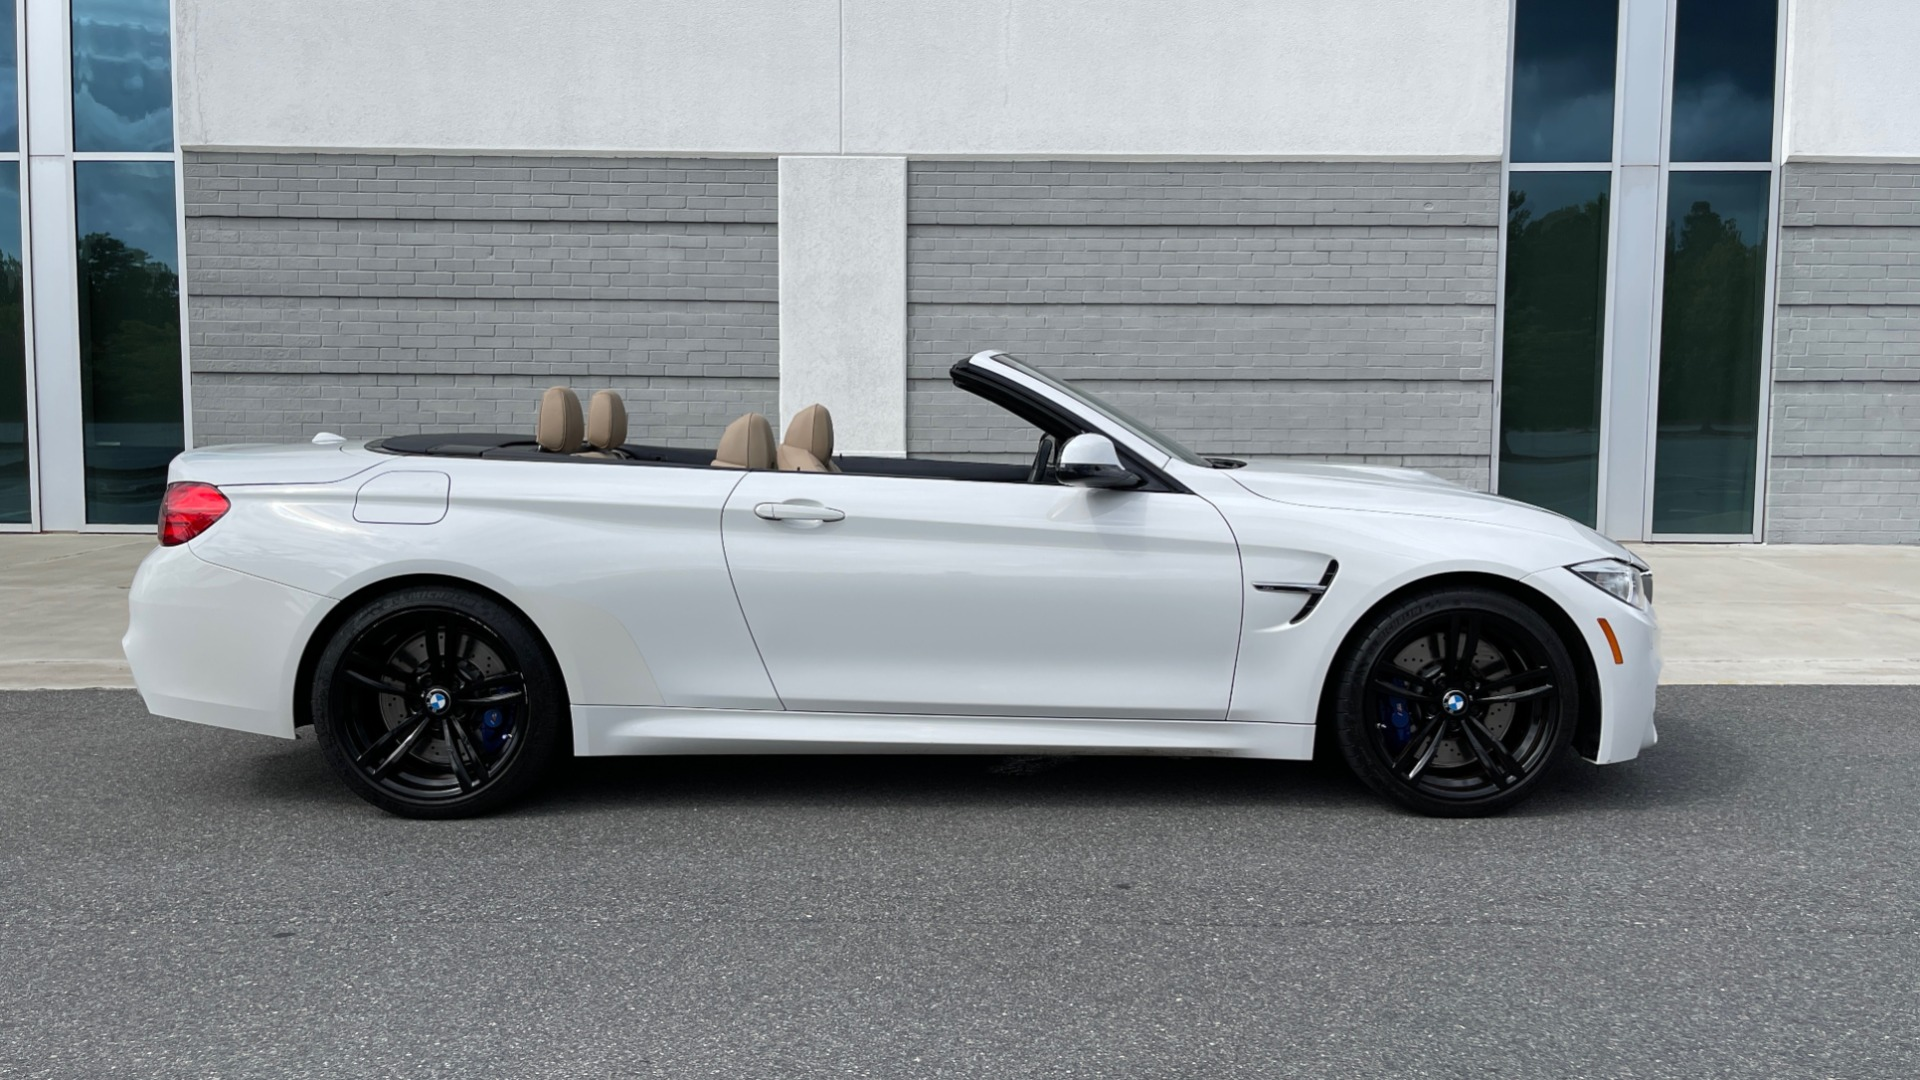 Used 2016 BMW M4 CONVERTIBLE 3.0L / 7-SPD AUTO / EXECUTIVE / ADAPT M SUSP / REARVIEW for sale $53,999 at Formula Imports in Charlotte NC 28227 5